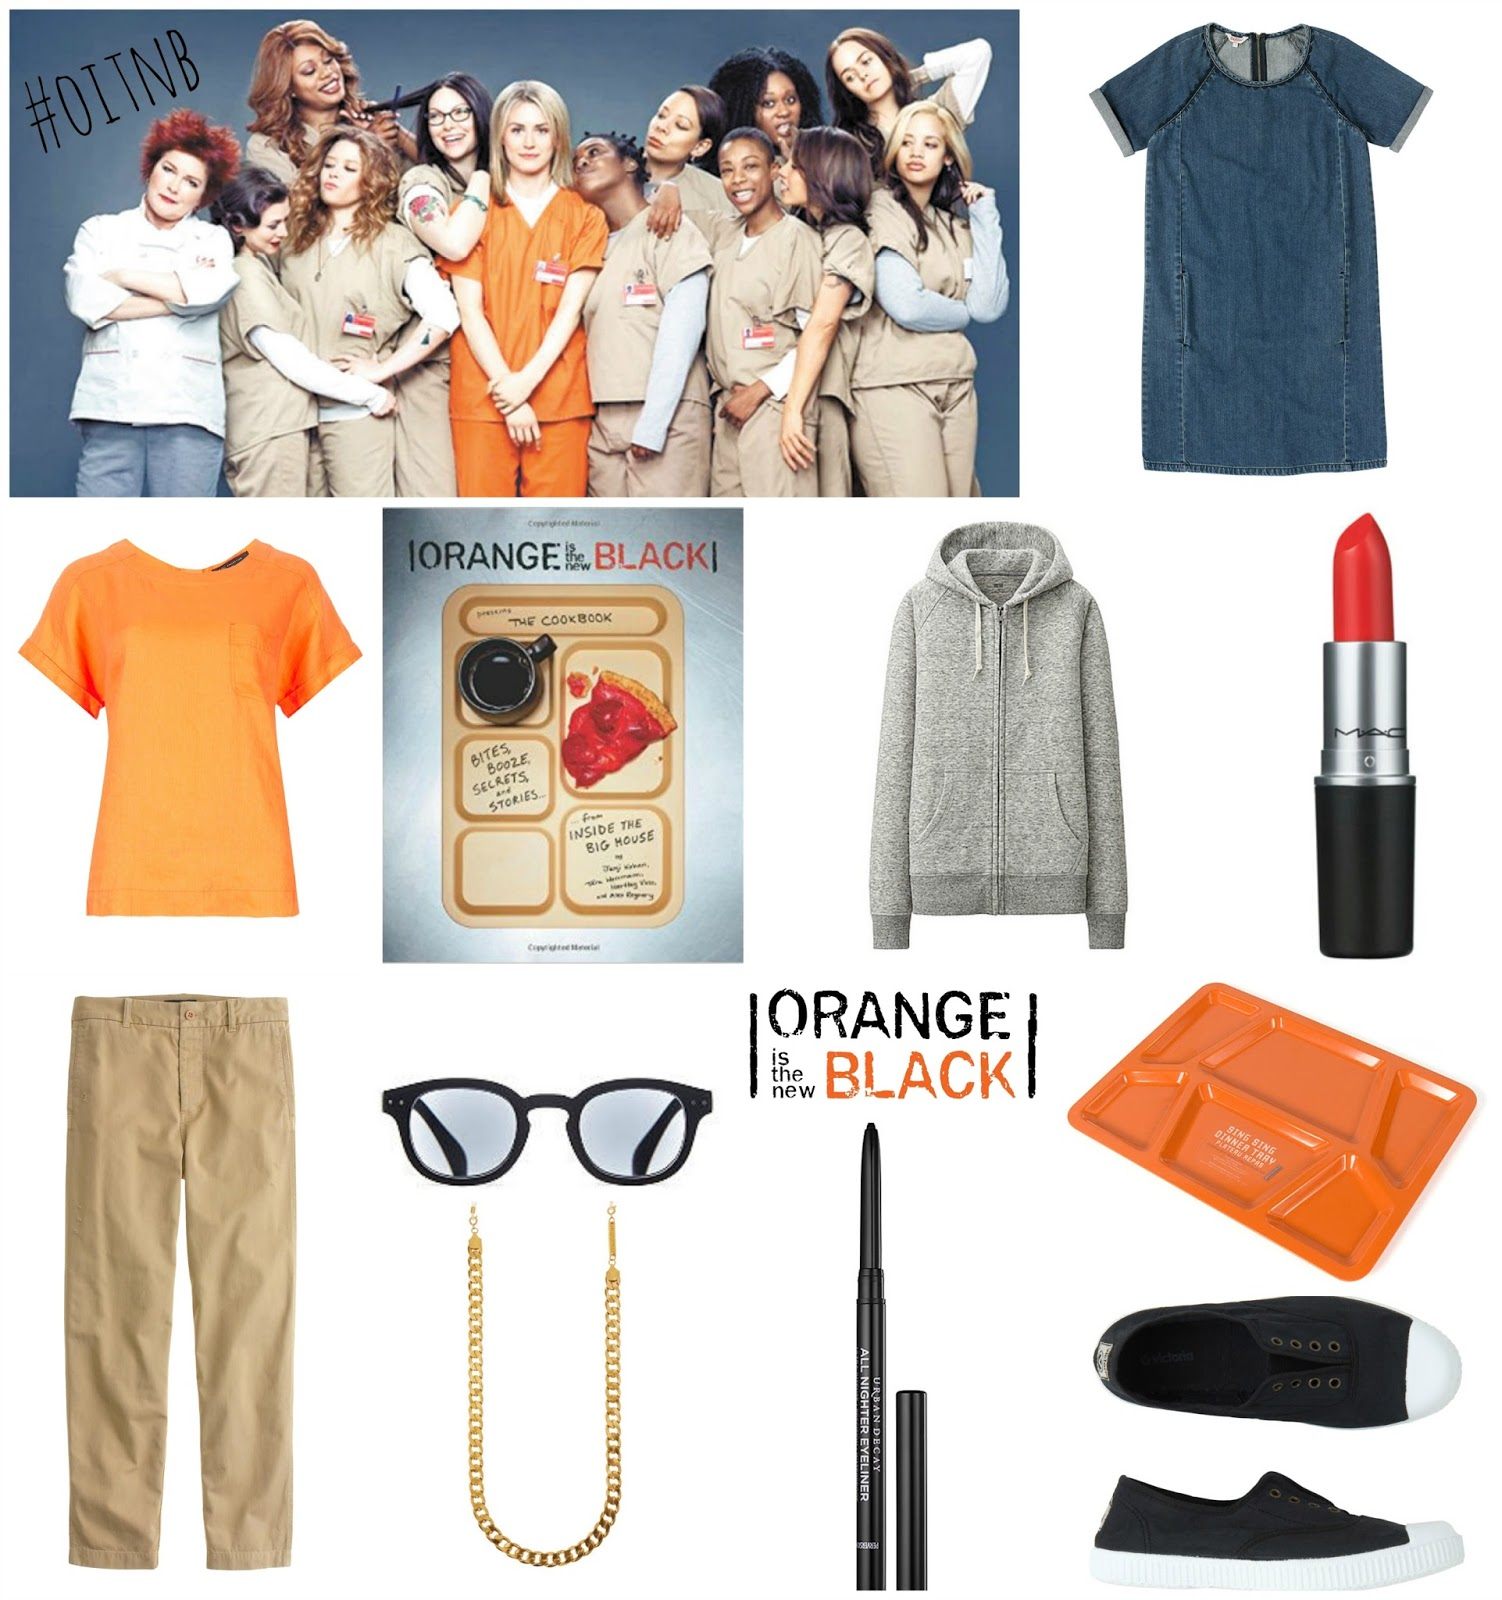 mamasVIB | V. I. BABYMAMAS: Doing TIME with Netflix and Orange Is the New Black new series launch!  orange is the new black | oitnb | netflix | stream team | tv series | launch tonight | new series | series 3 | piper chapman | orange | fashion | j crew | denim dress | chinos | prison fashion | oitnb style | cath kids ton | frame chain | goat | pumps | dresses | hoodie | grey sweats | uniqlo | mac | orange lipstick | sexy  eye liner | orange is the new black cookbook | food | style | fashion | marks & spencer | prison food tray | black | style | mamasvib | netflix streaming | dram series | blogging | event | premiere | london | oitnblondon | exposure pr | netflix tv | streaming tv service | mamasVIb | tv